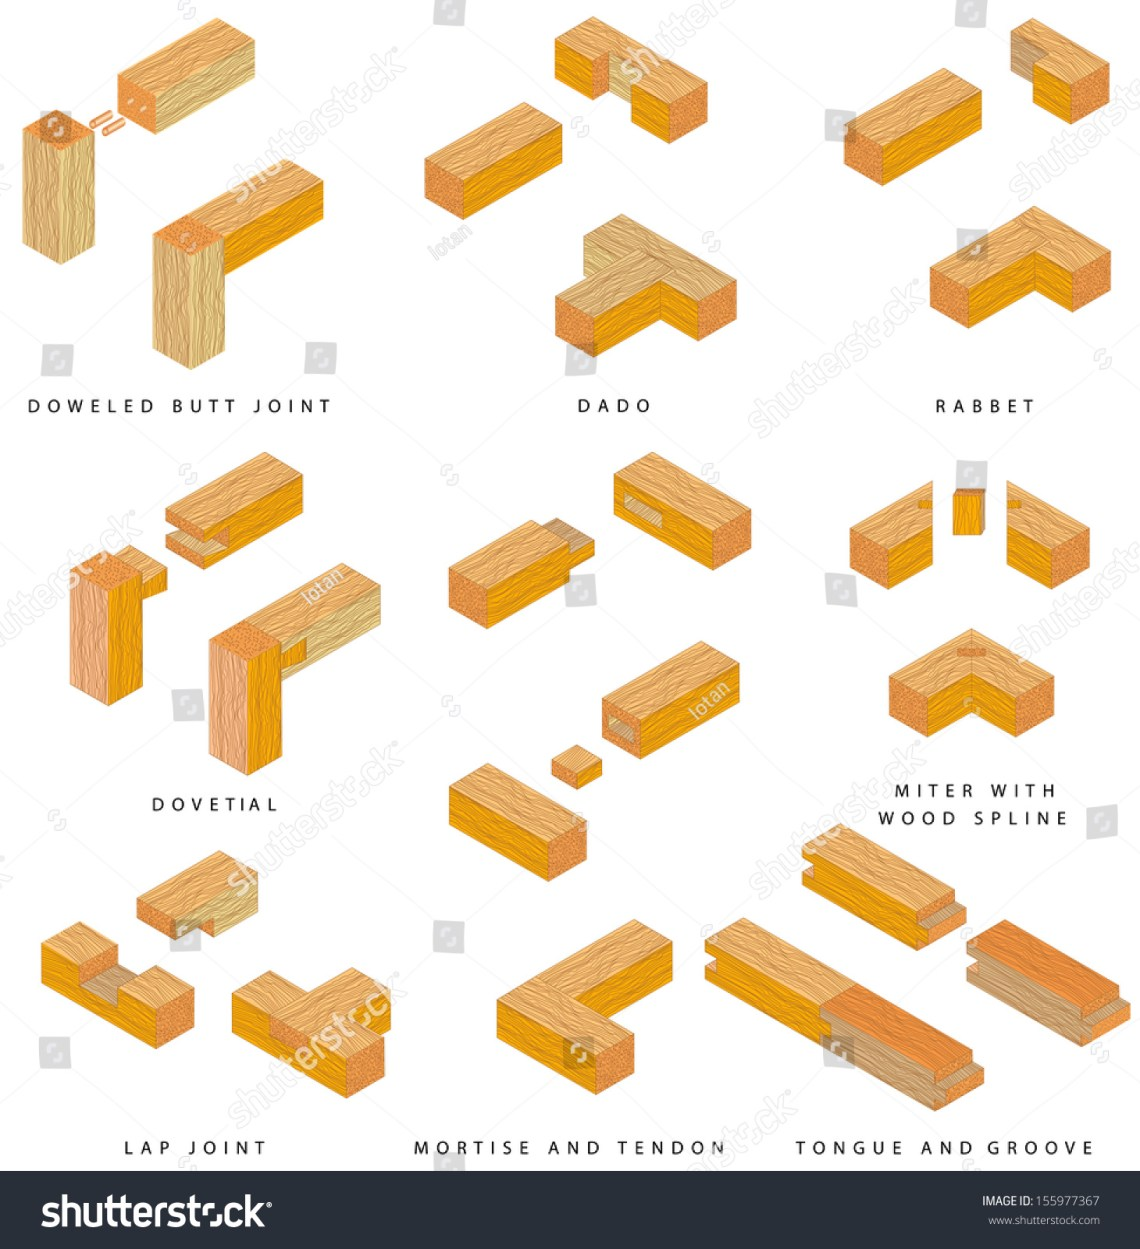 Image Result For Different Types Of Timber Joints